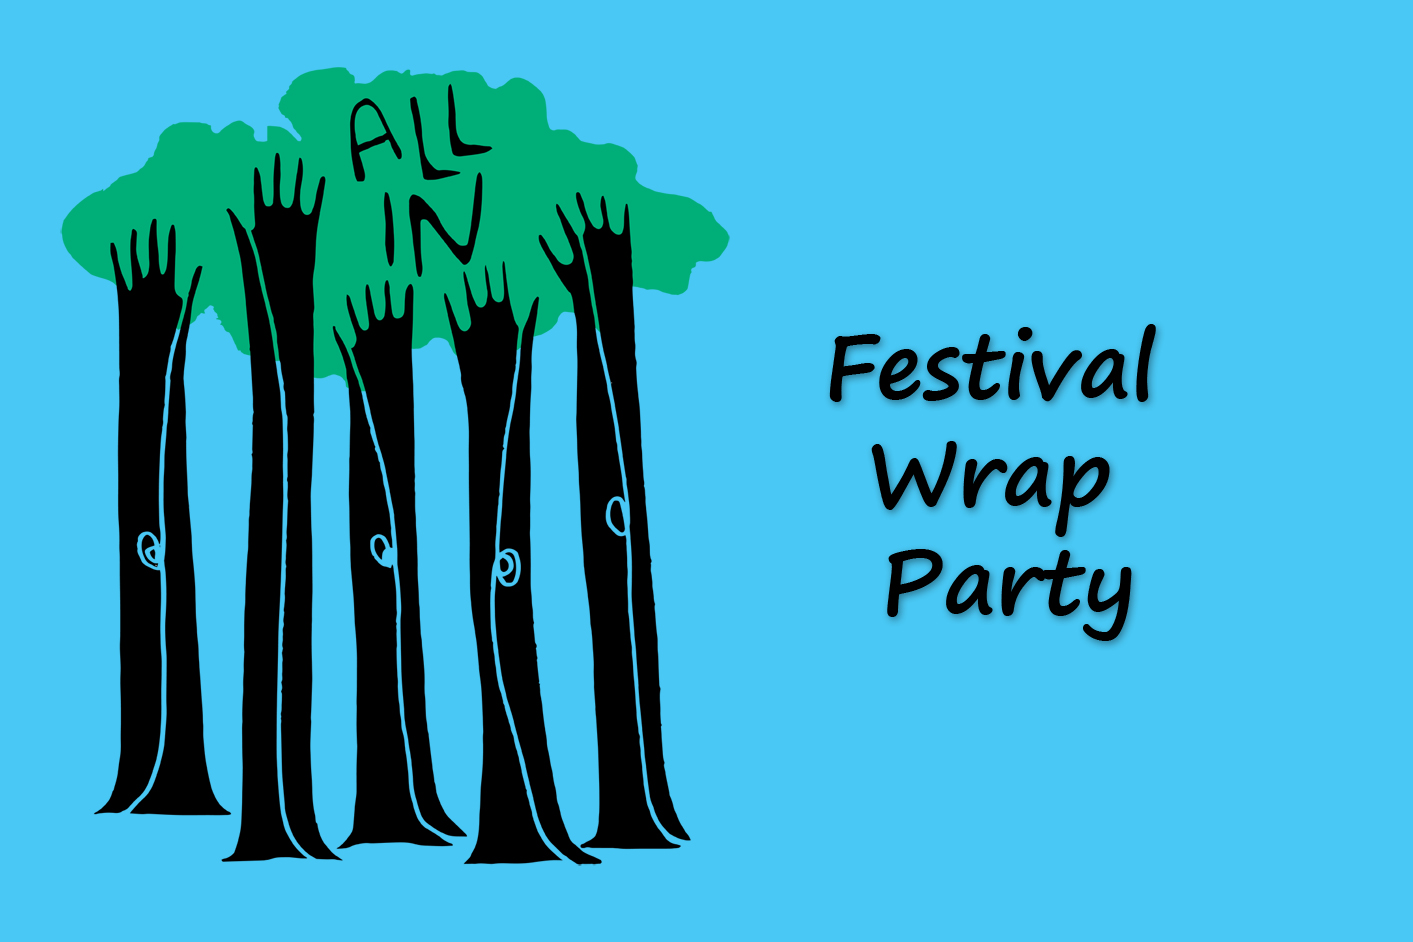 Festival Wrap Party artwork of hands reaching up.